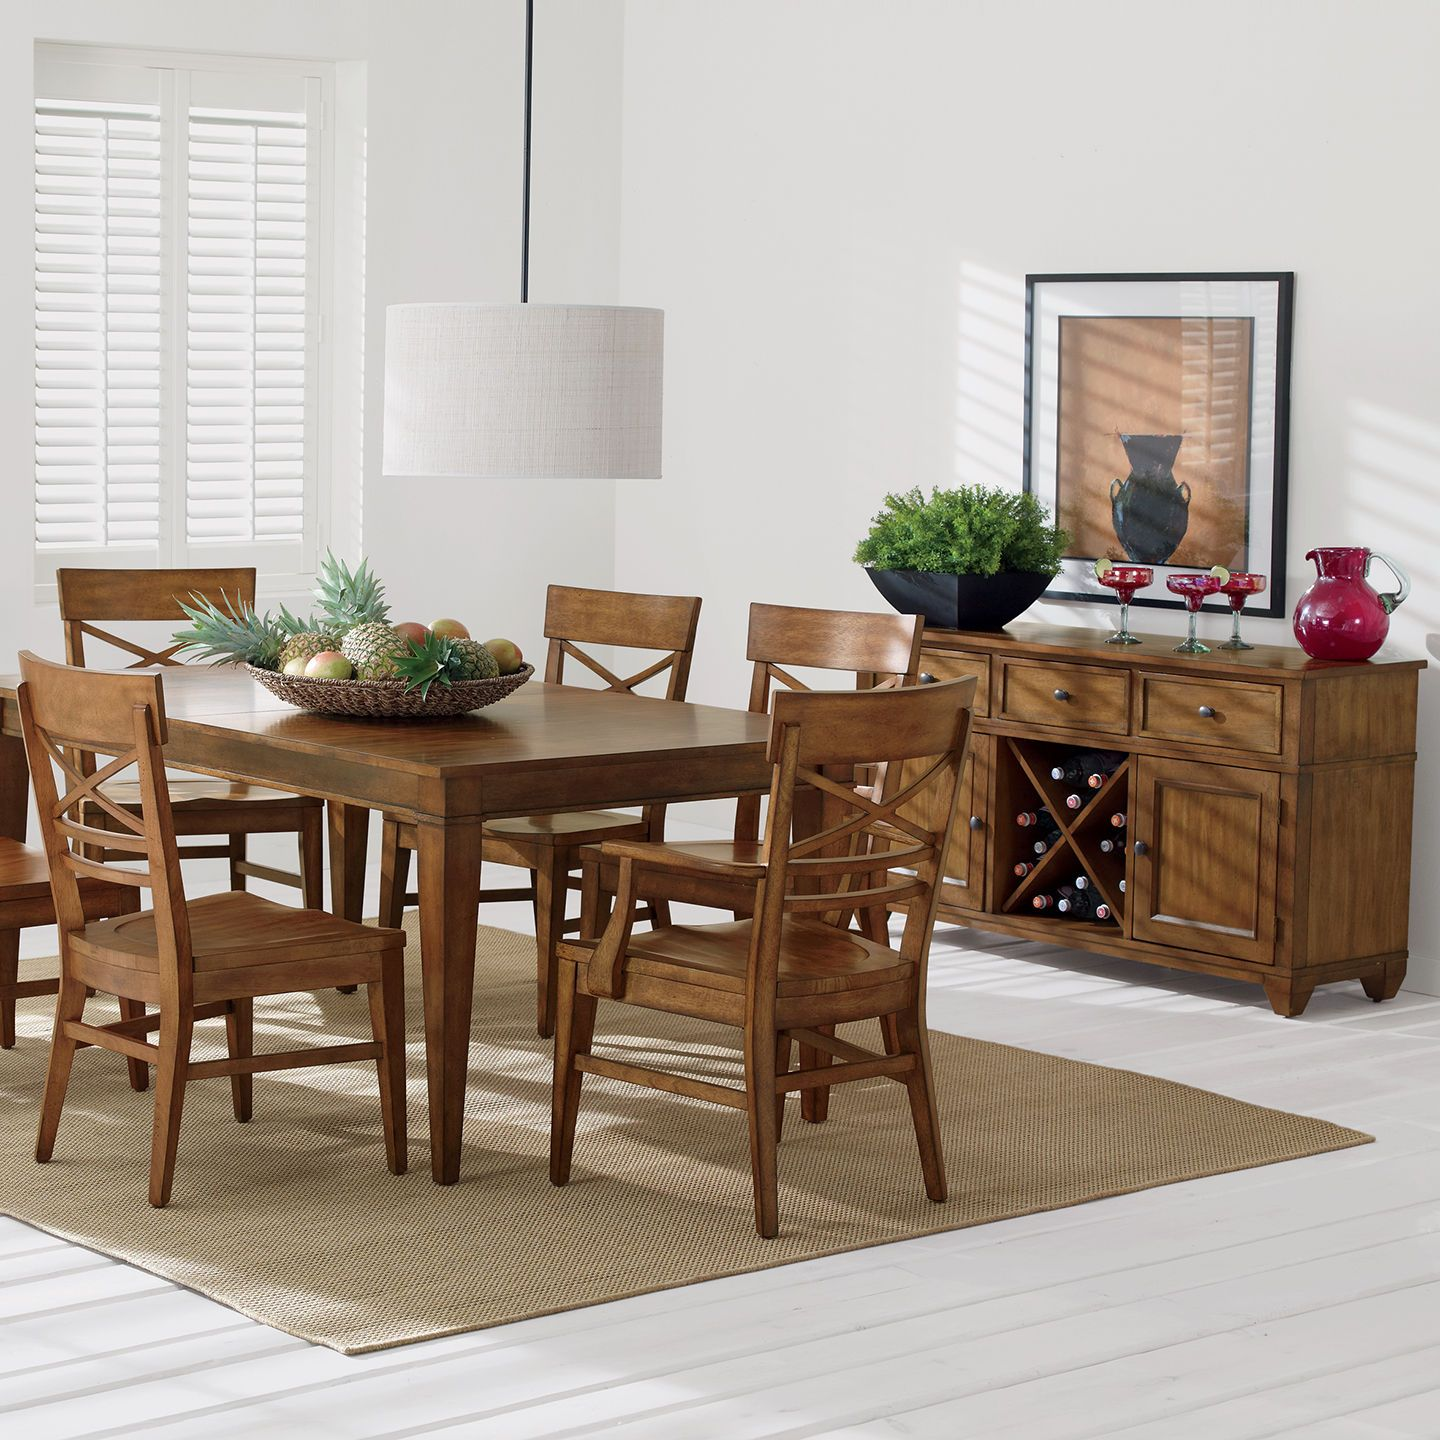 Christopher Dining Table Ethan Allen Us Dining Table In Kitchen Dining Room Design Dining